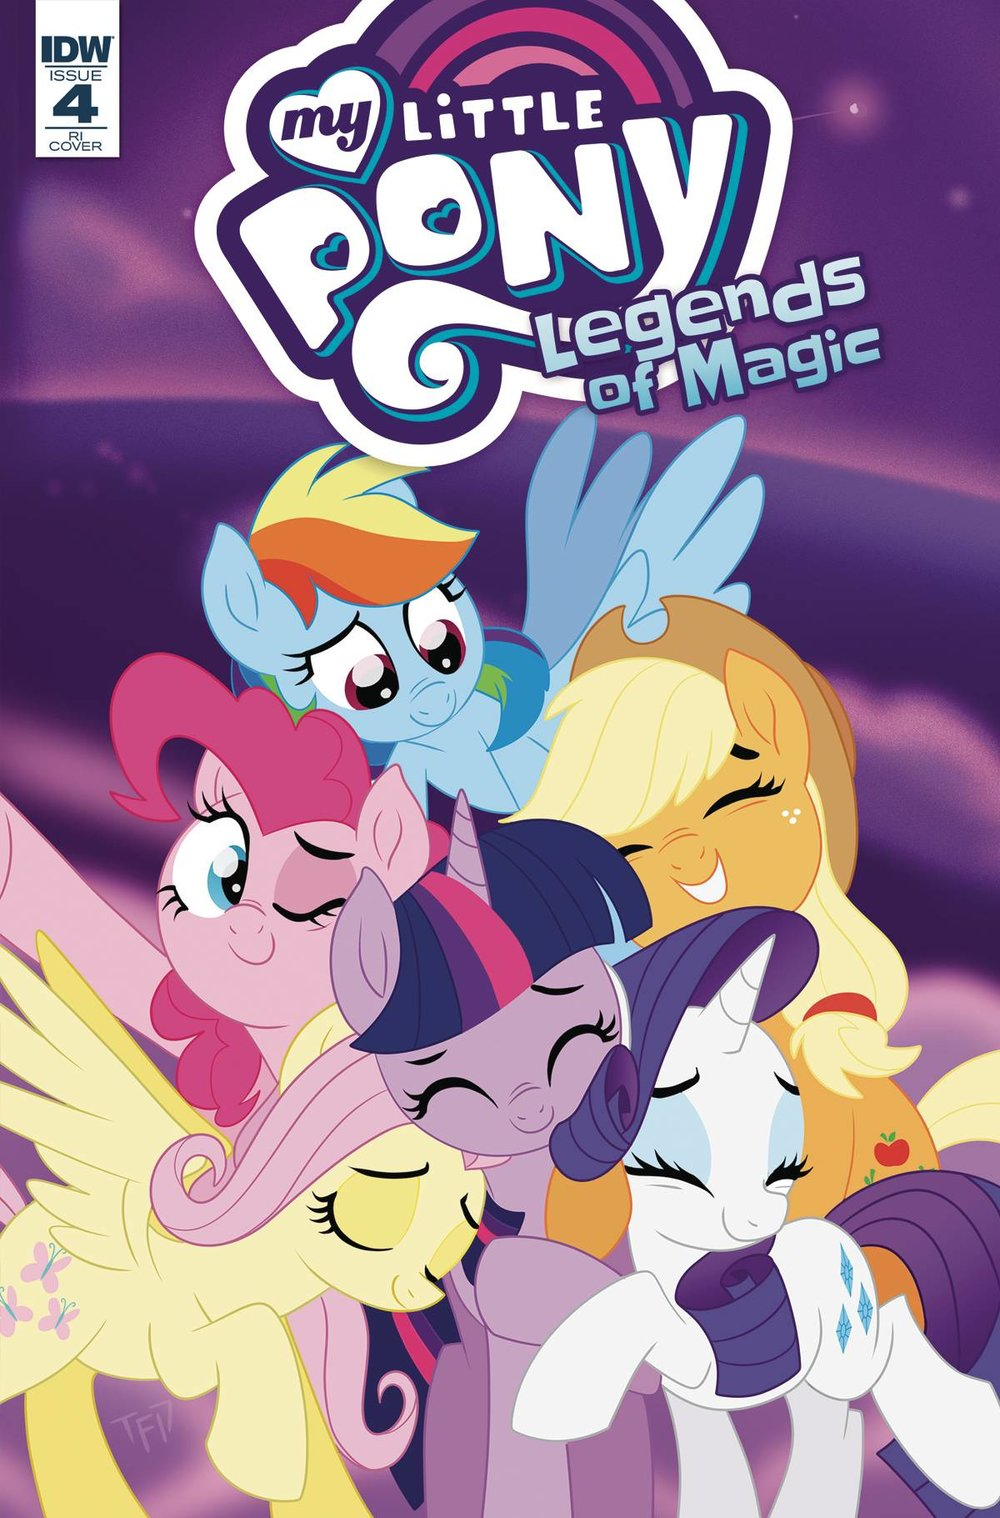 MY LITTLE PONY LEGENDS OF MAGIC 4 10 COPY INCV.jpg